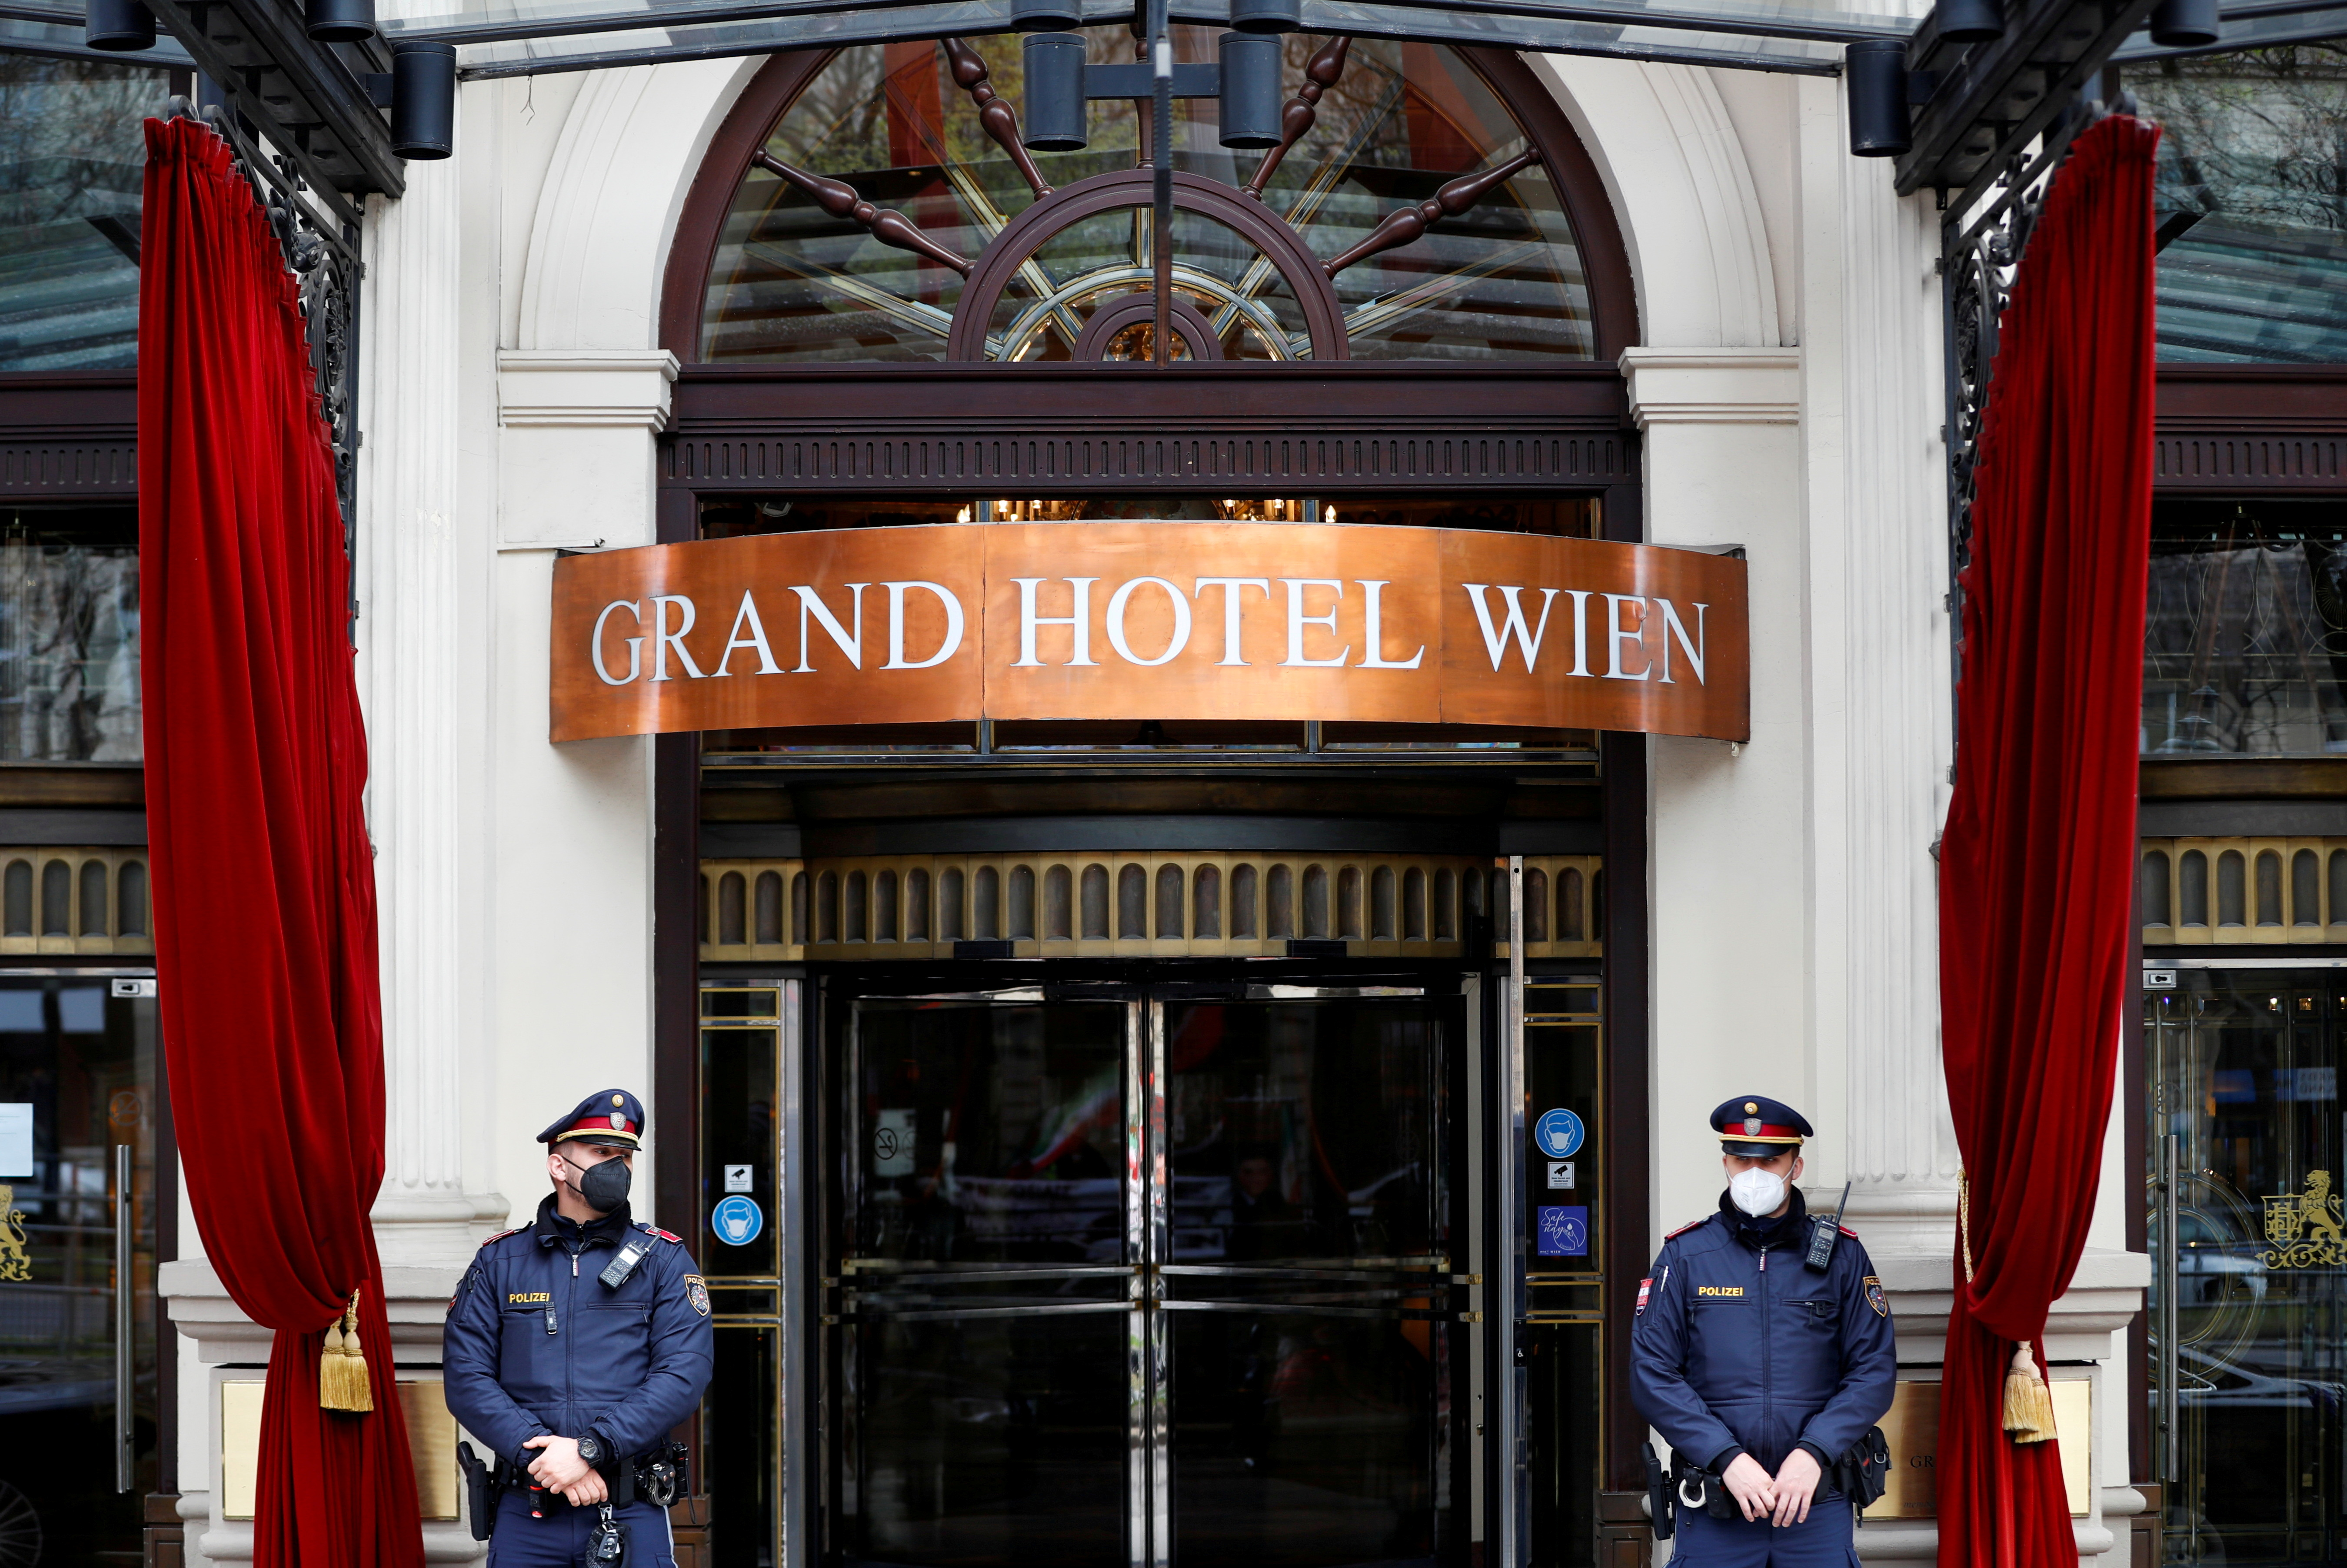 Police stand outside a hotel where a meeting of the Joint Commission of the Joint Comprehensive Plan of Action (JCPOA), or Iran nuclear deal, is held in Vienna, Austria, April 20, 2021. REUTERS/Leonhard Foeger